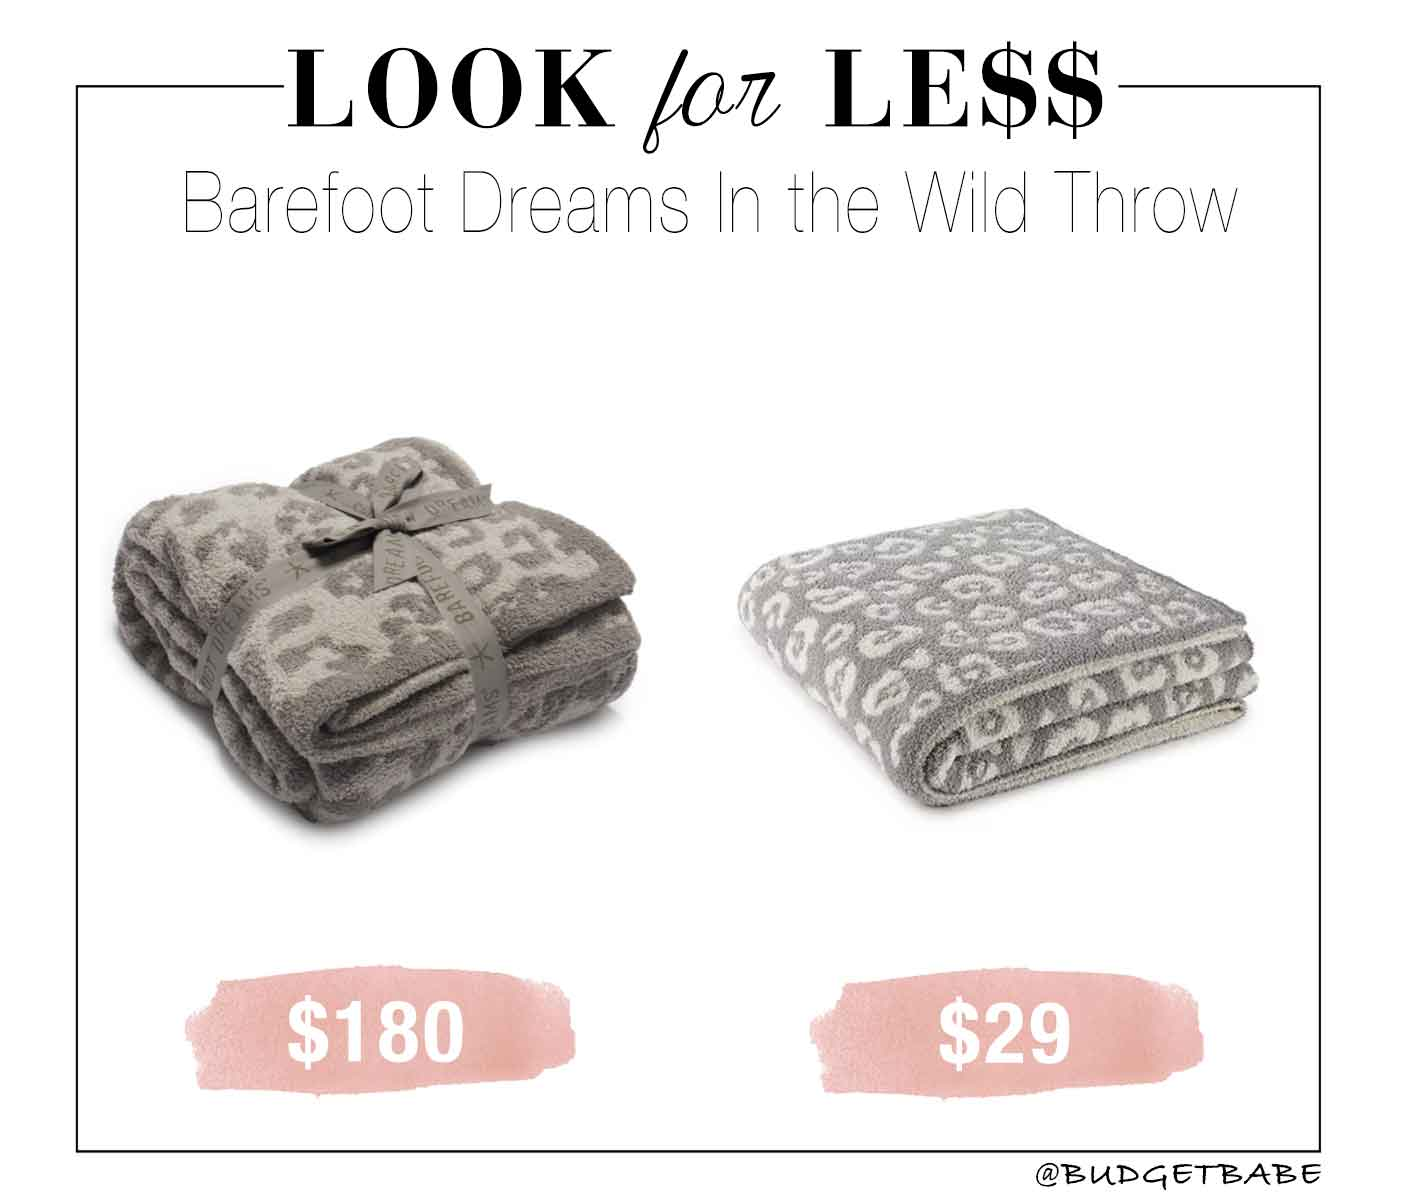 Barefoot Dreams blankets on major sale at Nordstrom Rack plus similar styles at Sam's Club!